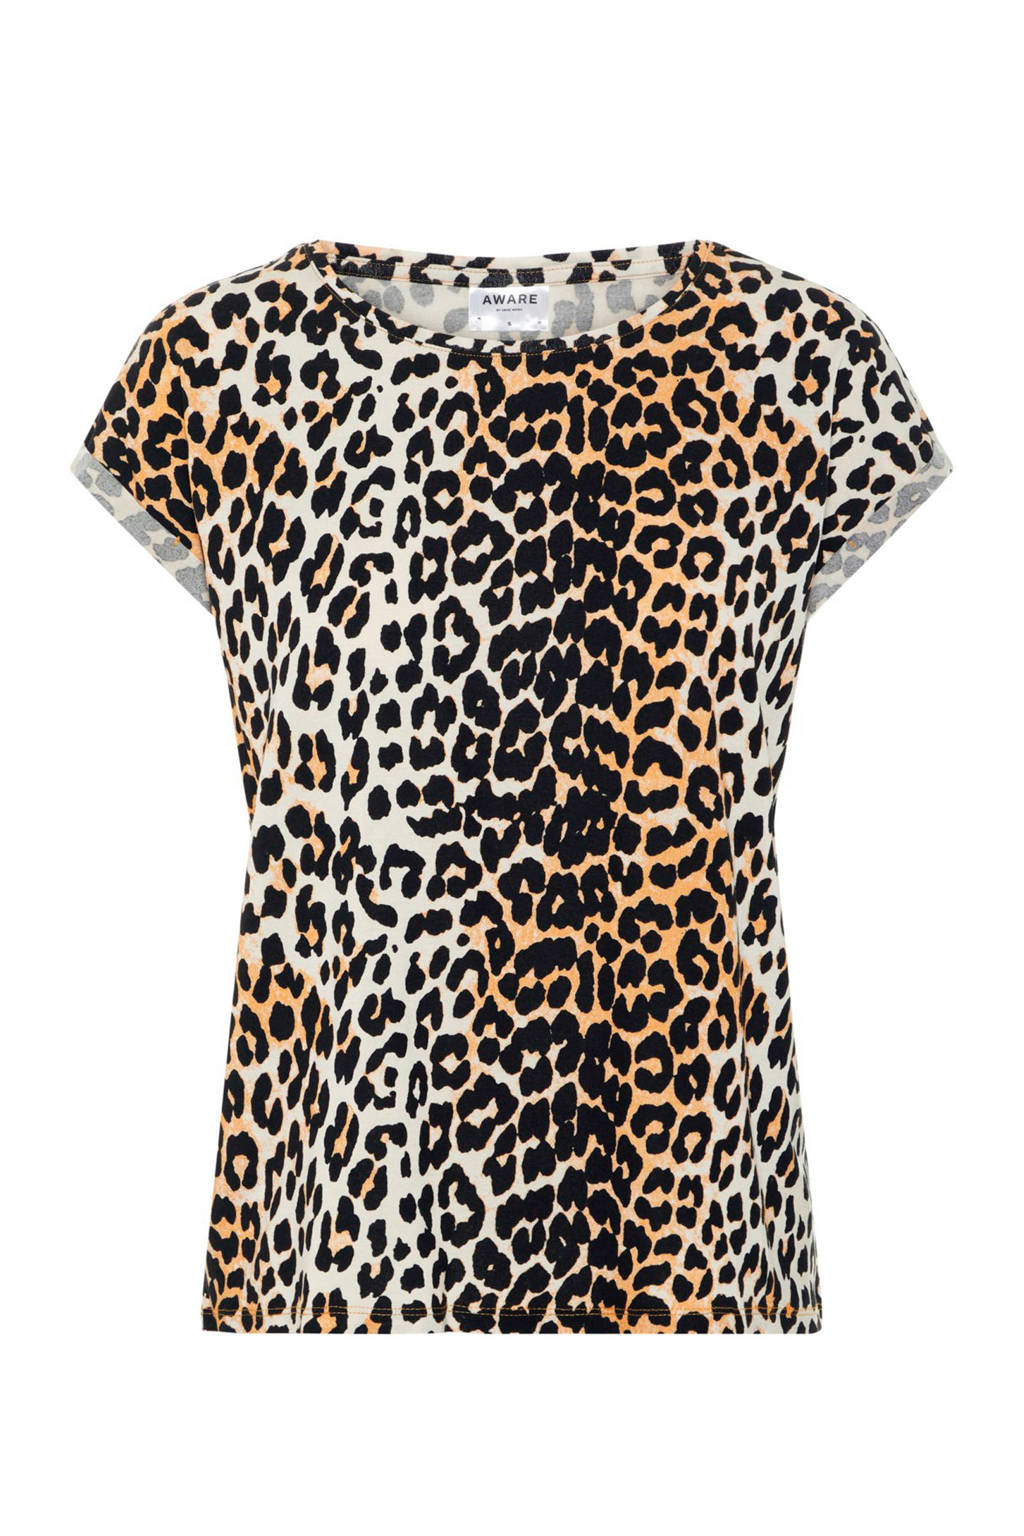 AWARE by VERO MODA T-shirt met panterprint, Bruin/zwart/ecru